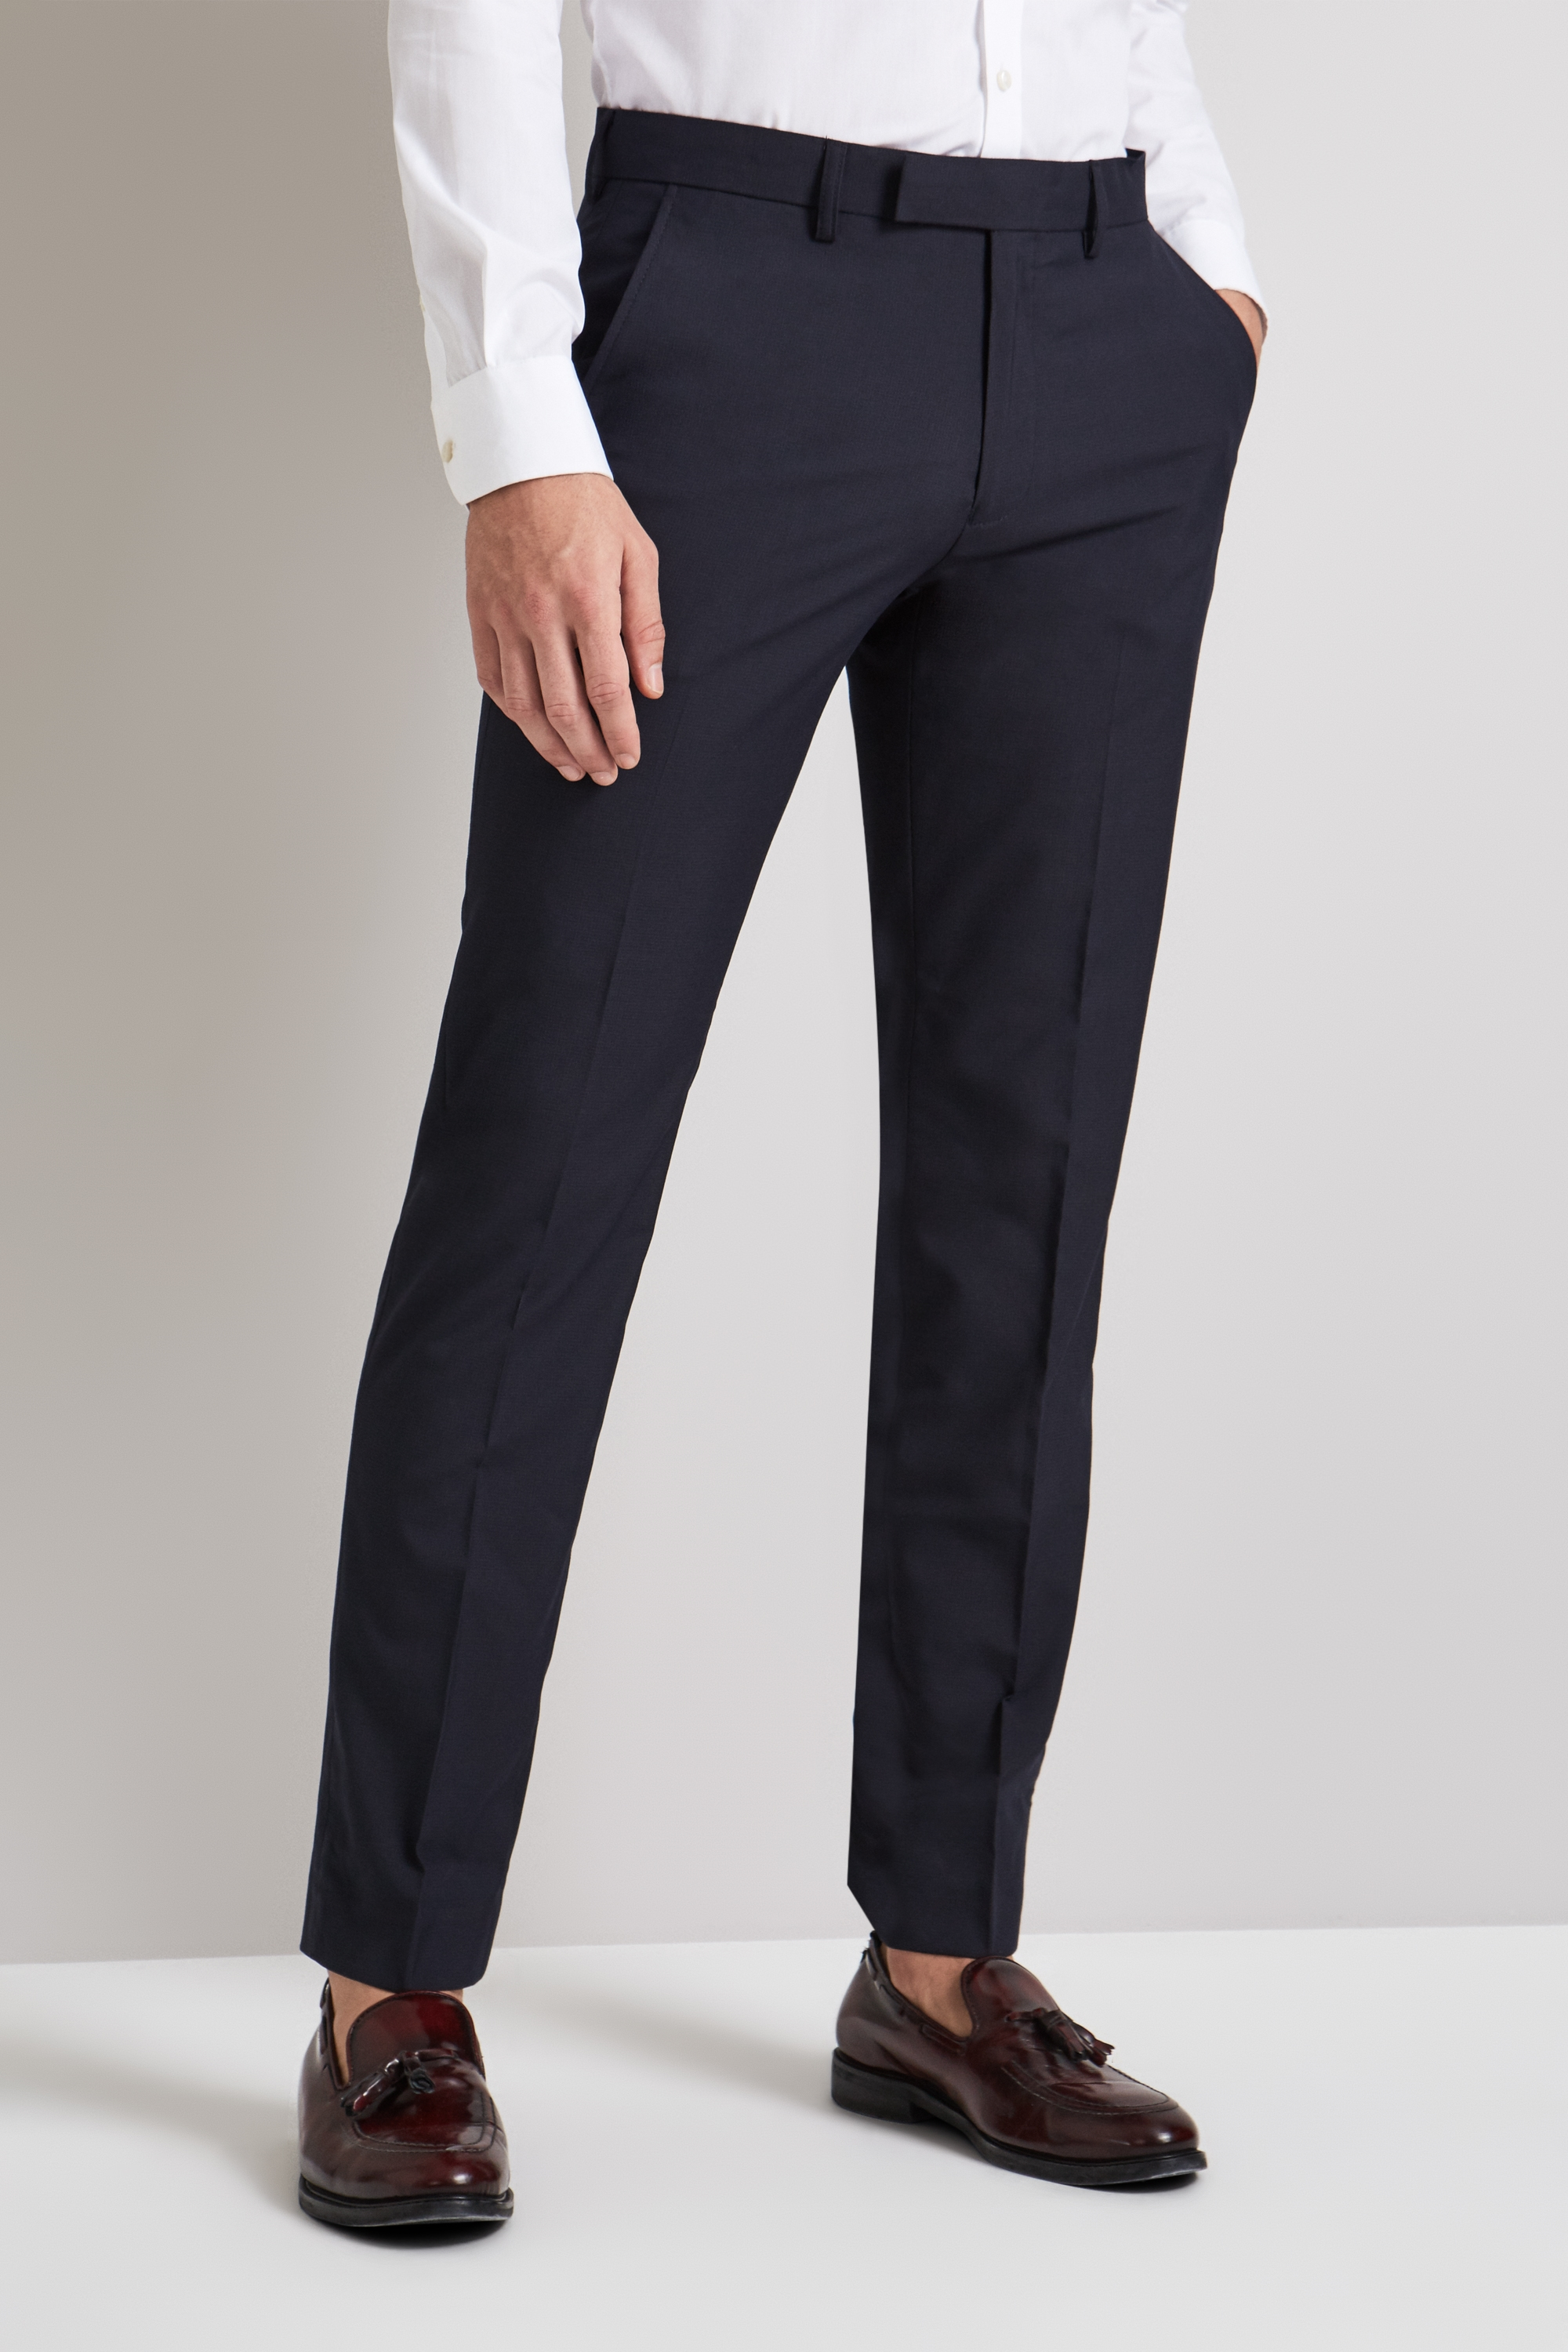 Moss London Mens Suit Trousers Slim Fit Navy Blue Micro Check Formal Pants | EBay